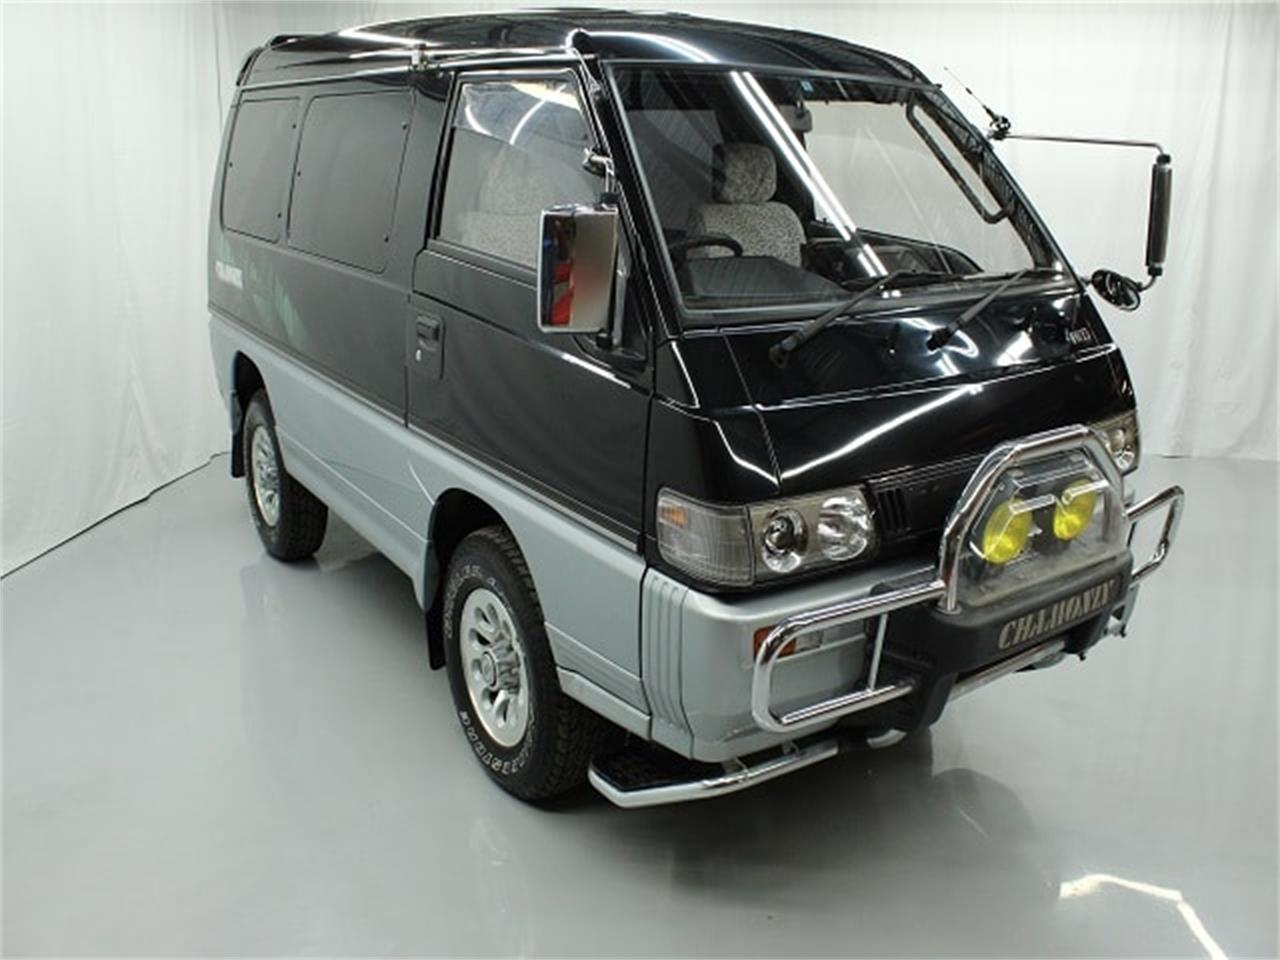 1992 Mitsubishi Delica for sale in Christiansburg, VA